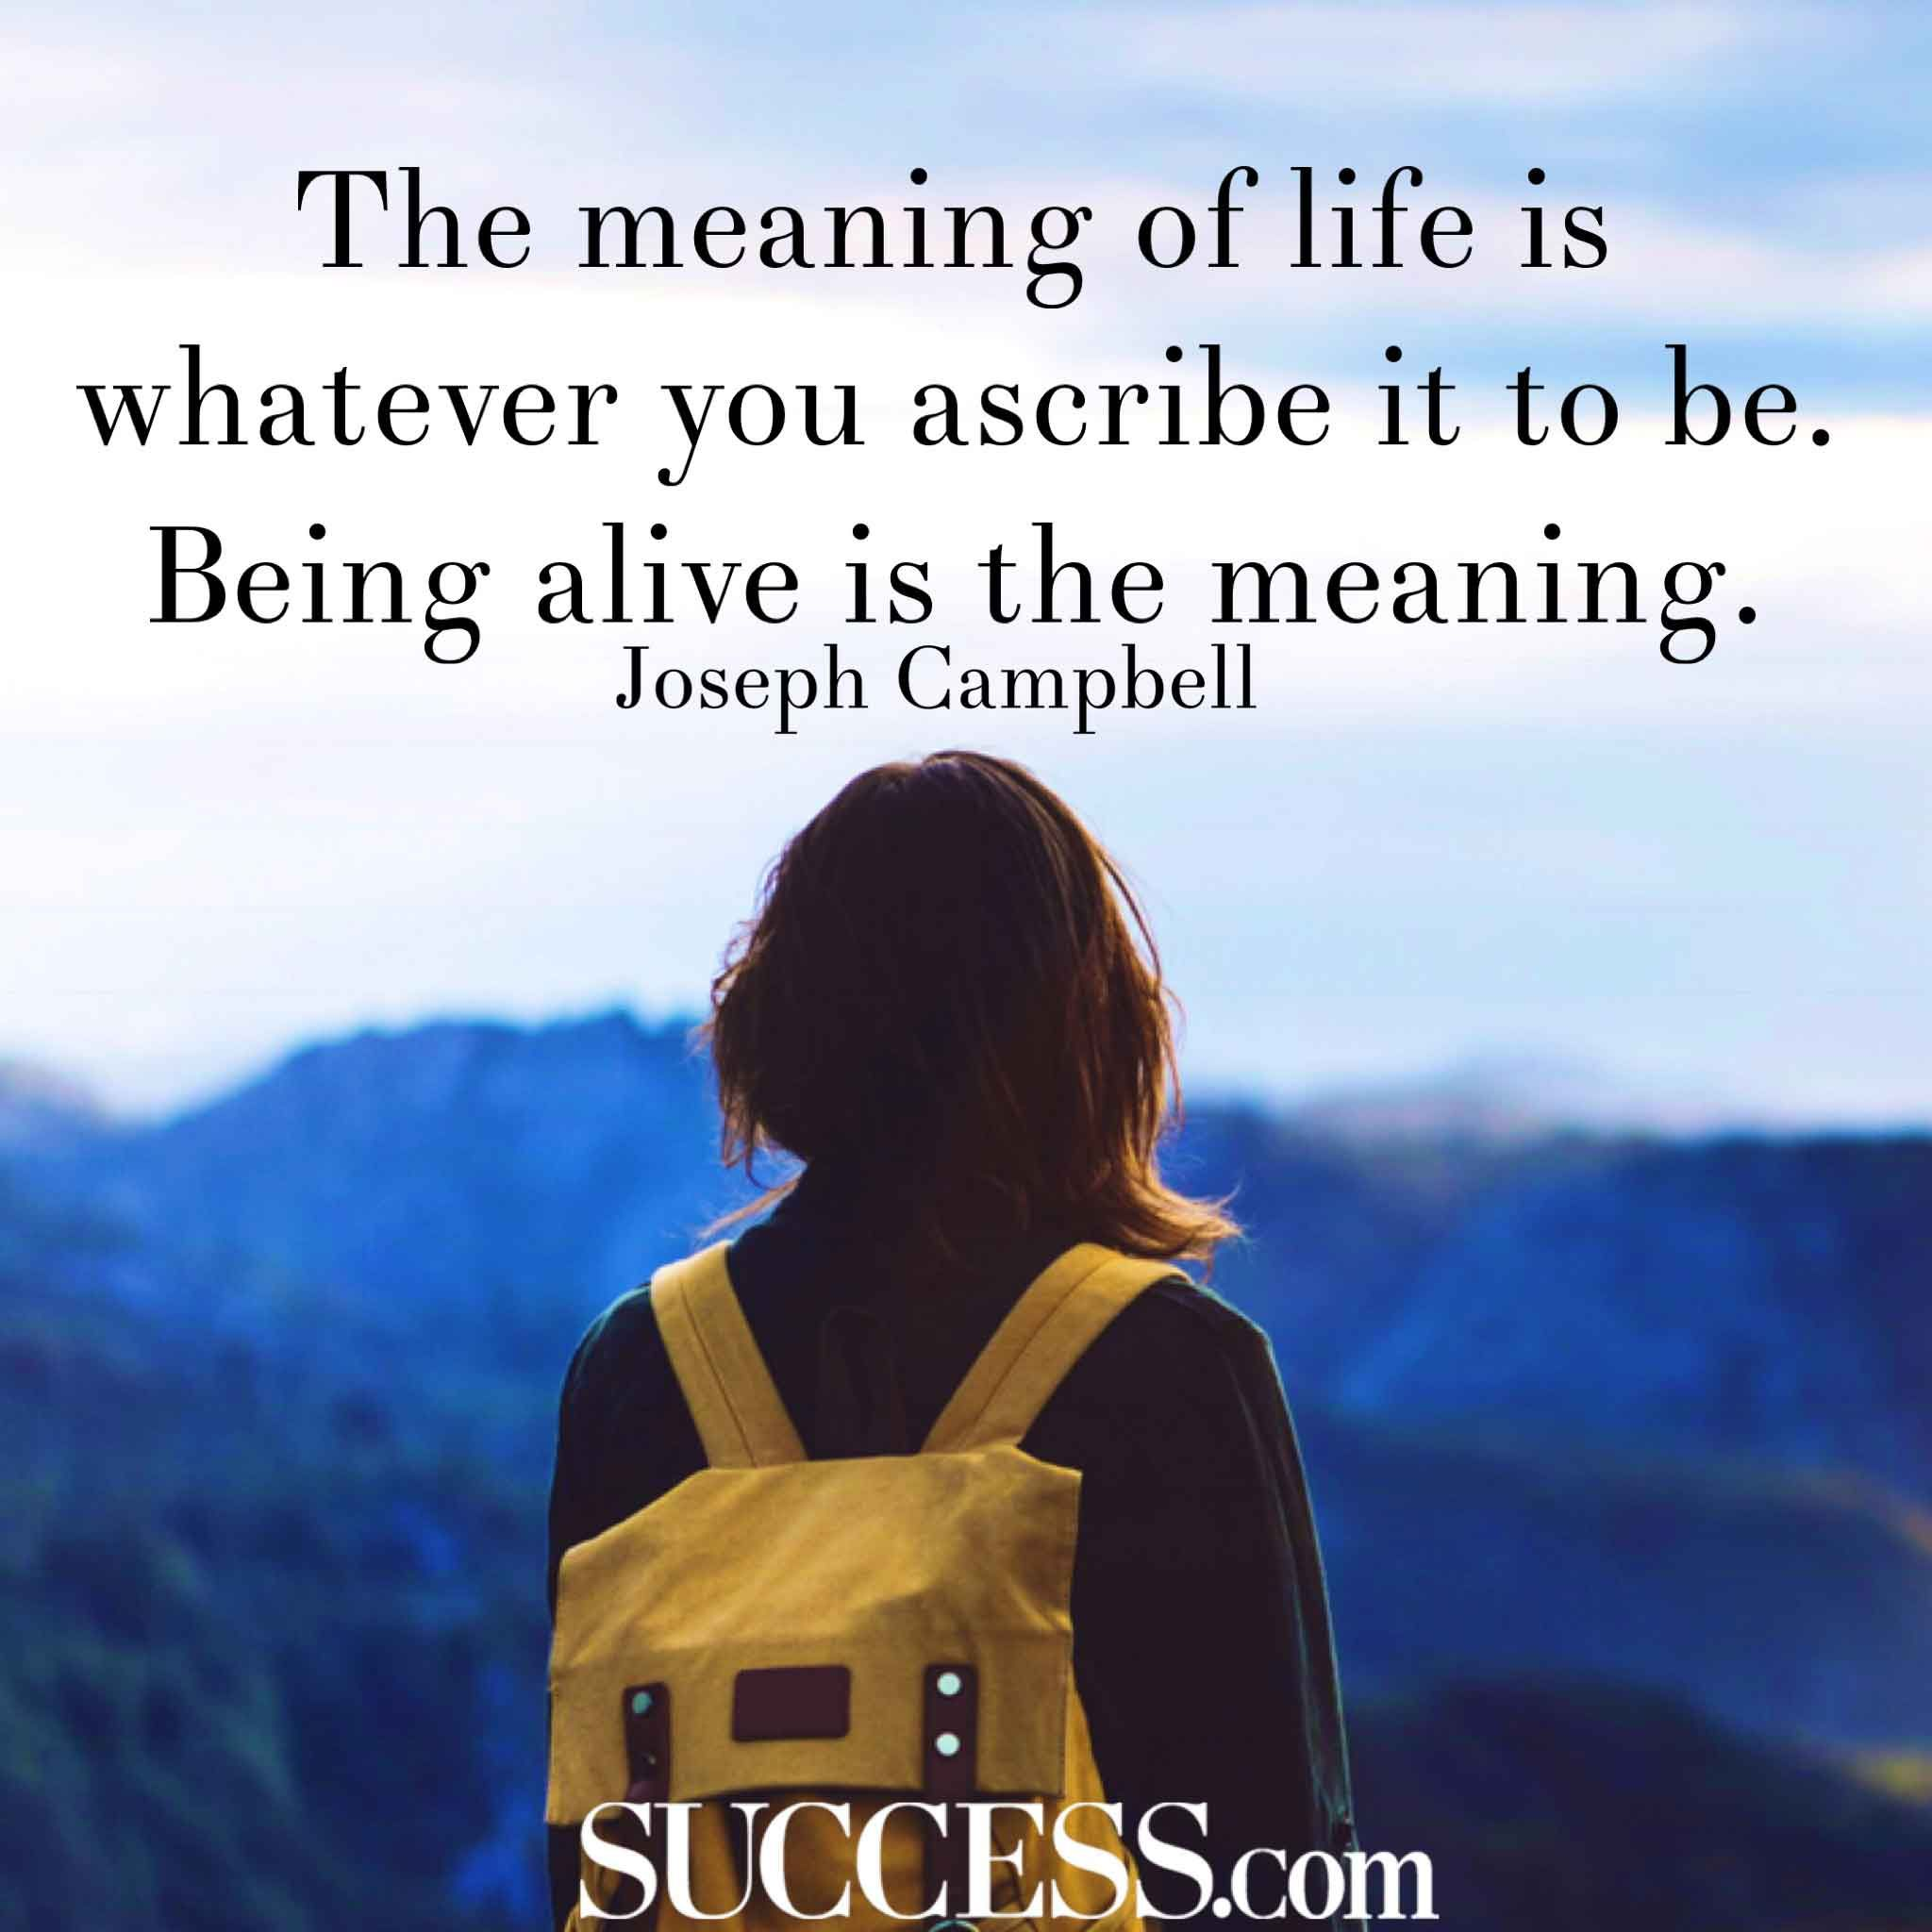 Wise Quotes About Life Classy The Meaning Of Life In 15 Wise Quotes  Success  Self Help . Inspiration